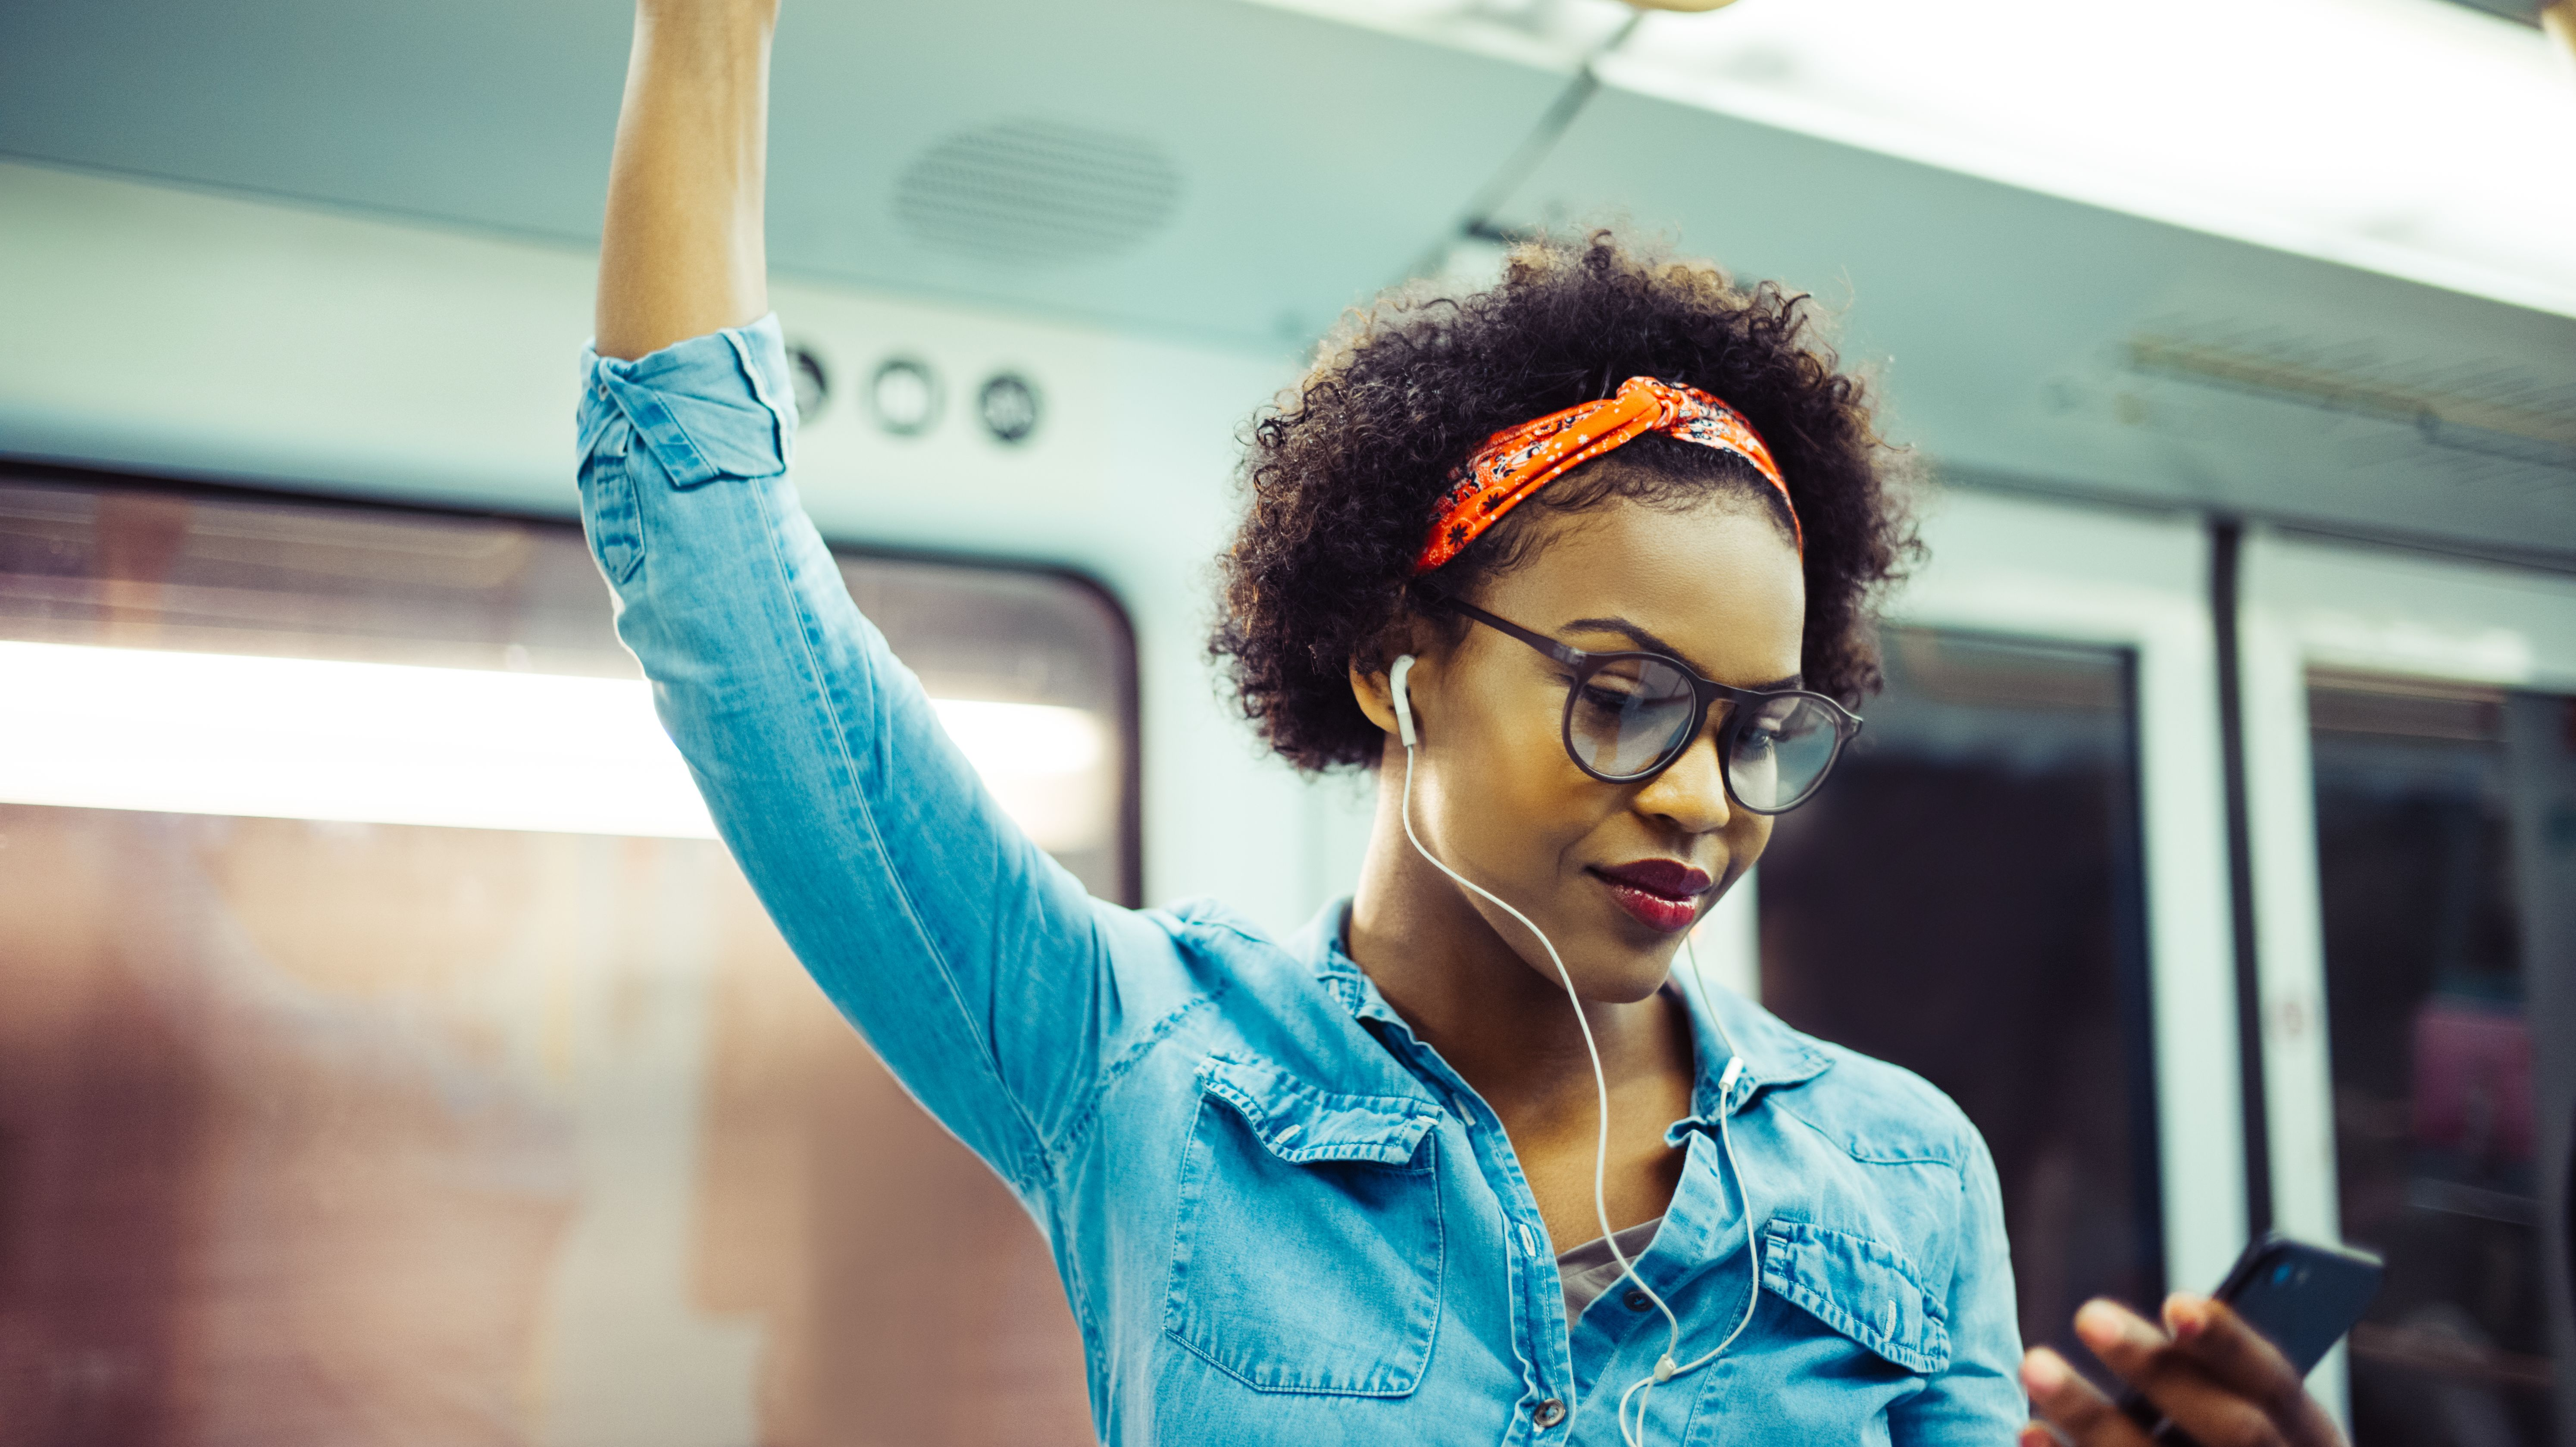 15 Podcasts That Will Make You Feel Smarter